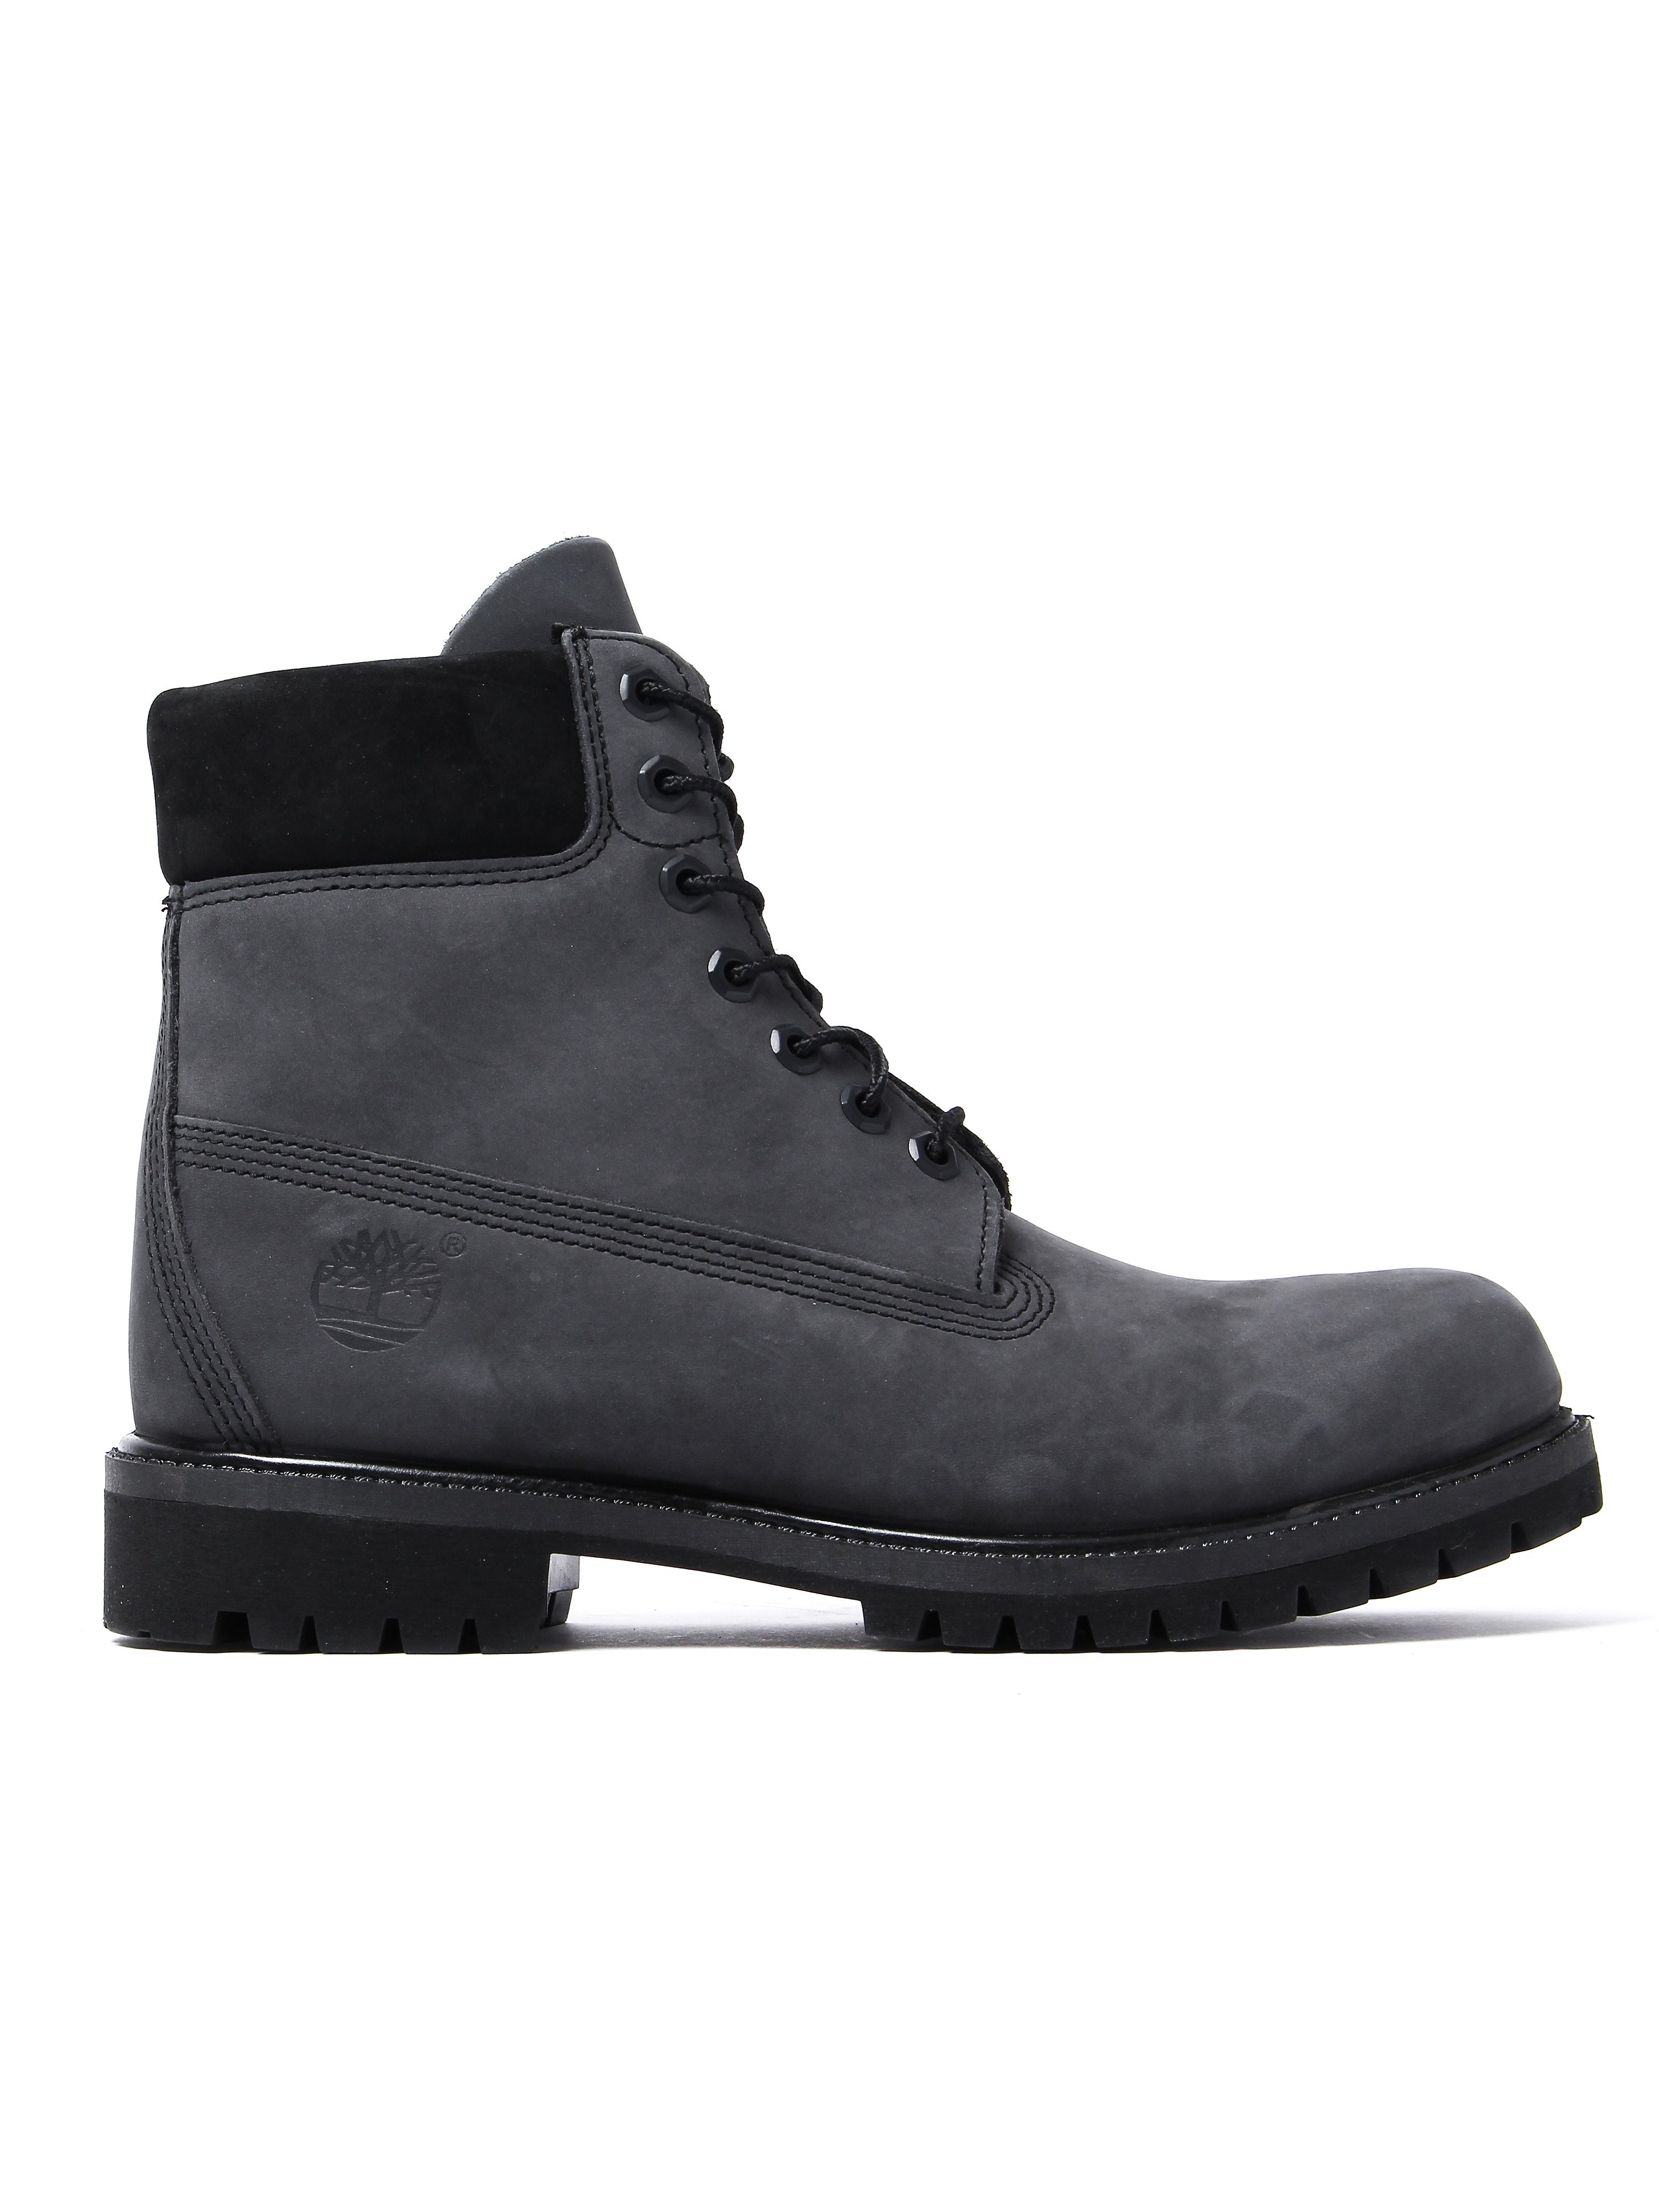 Timberland Men's  Inch Premium Boots - Forged Iron Nubuck